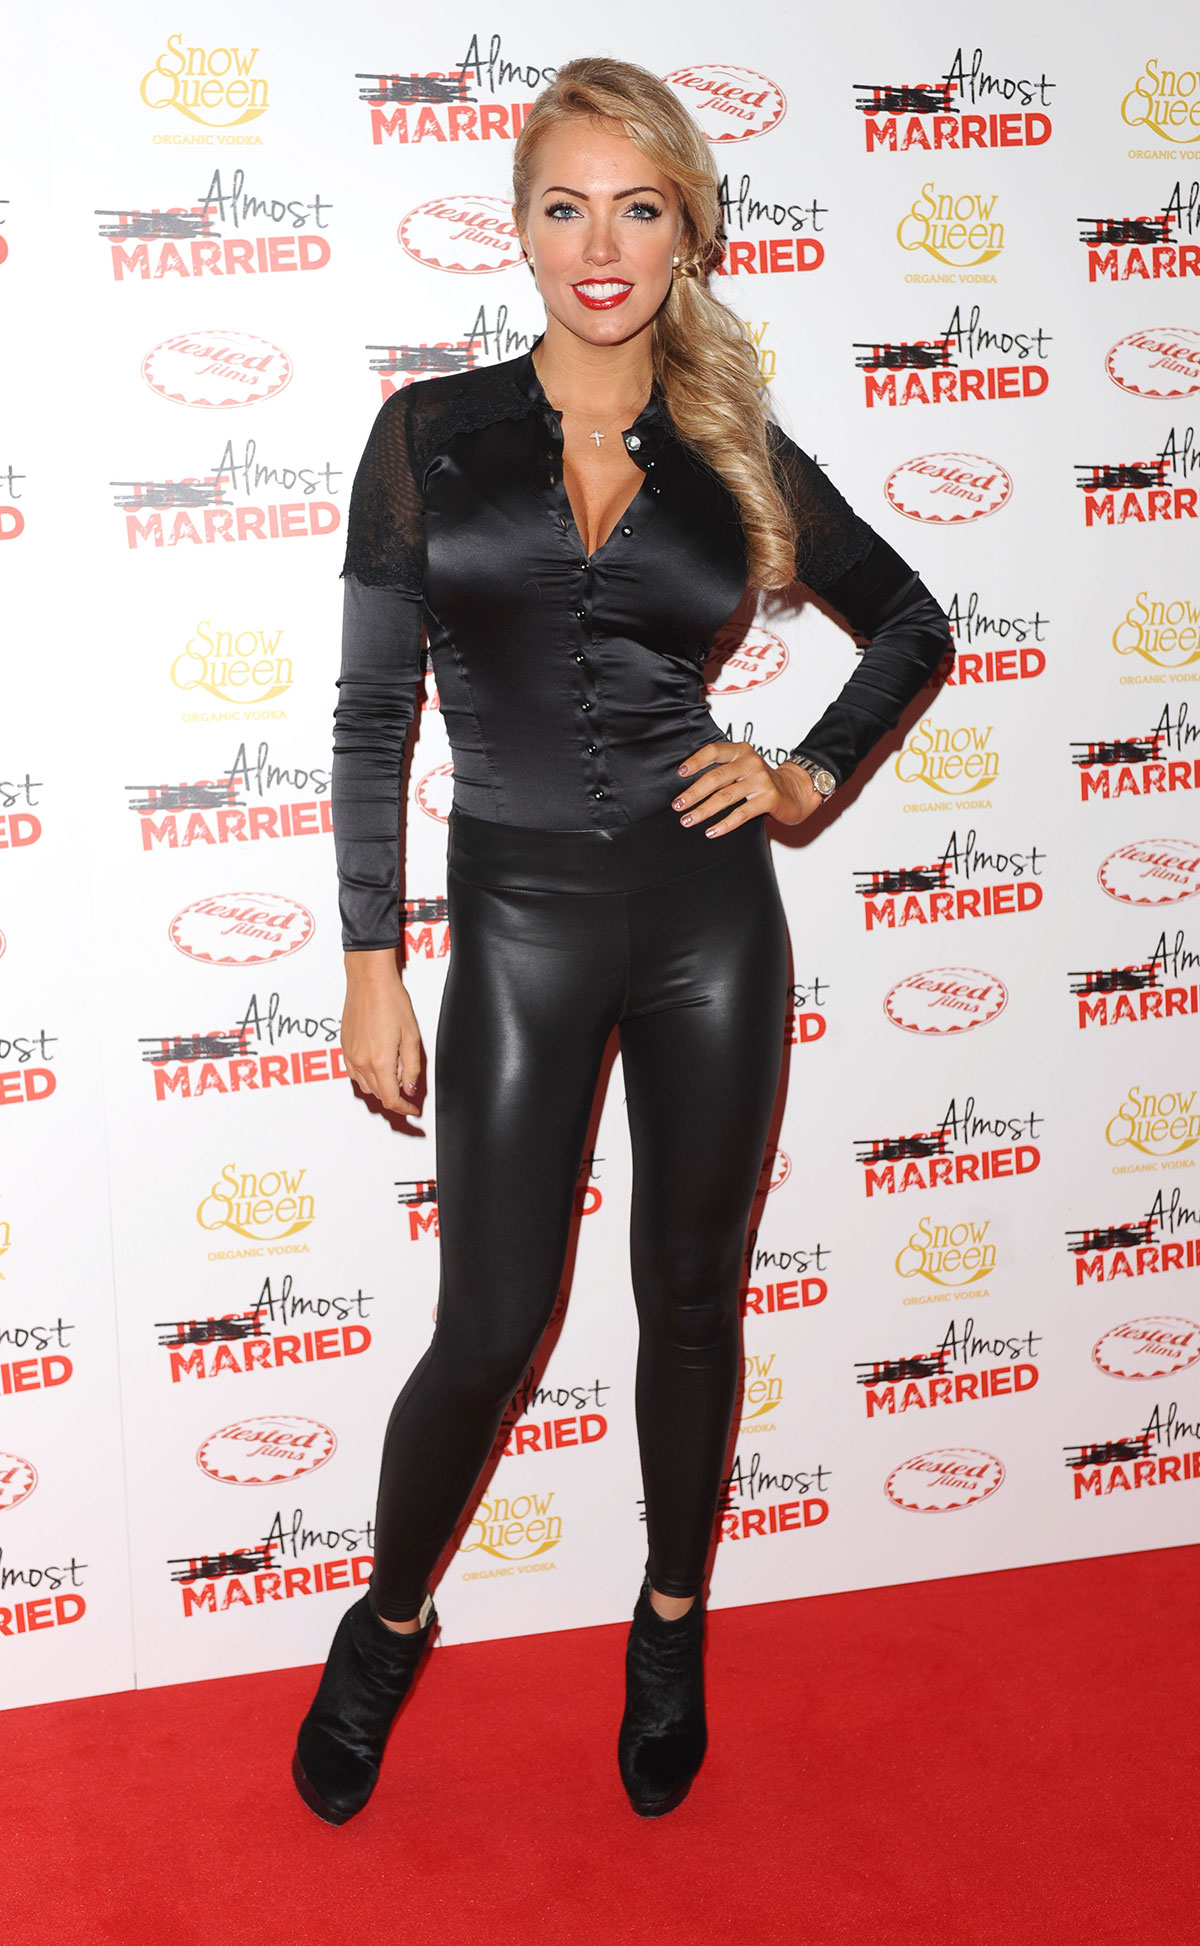 Aisleyne Horgan Wallace attends UK Gala screening of Almost Married